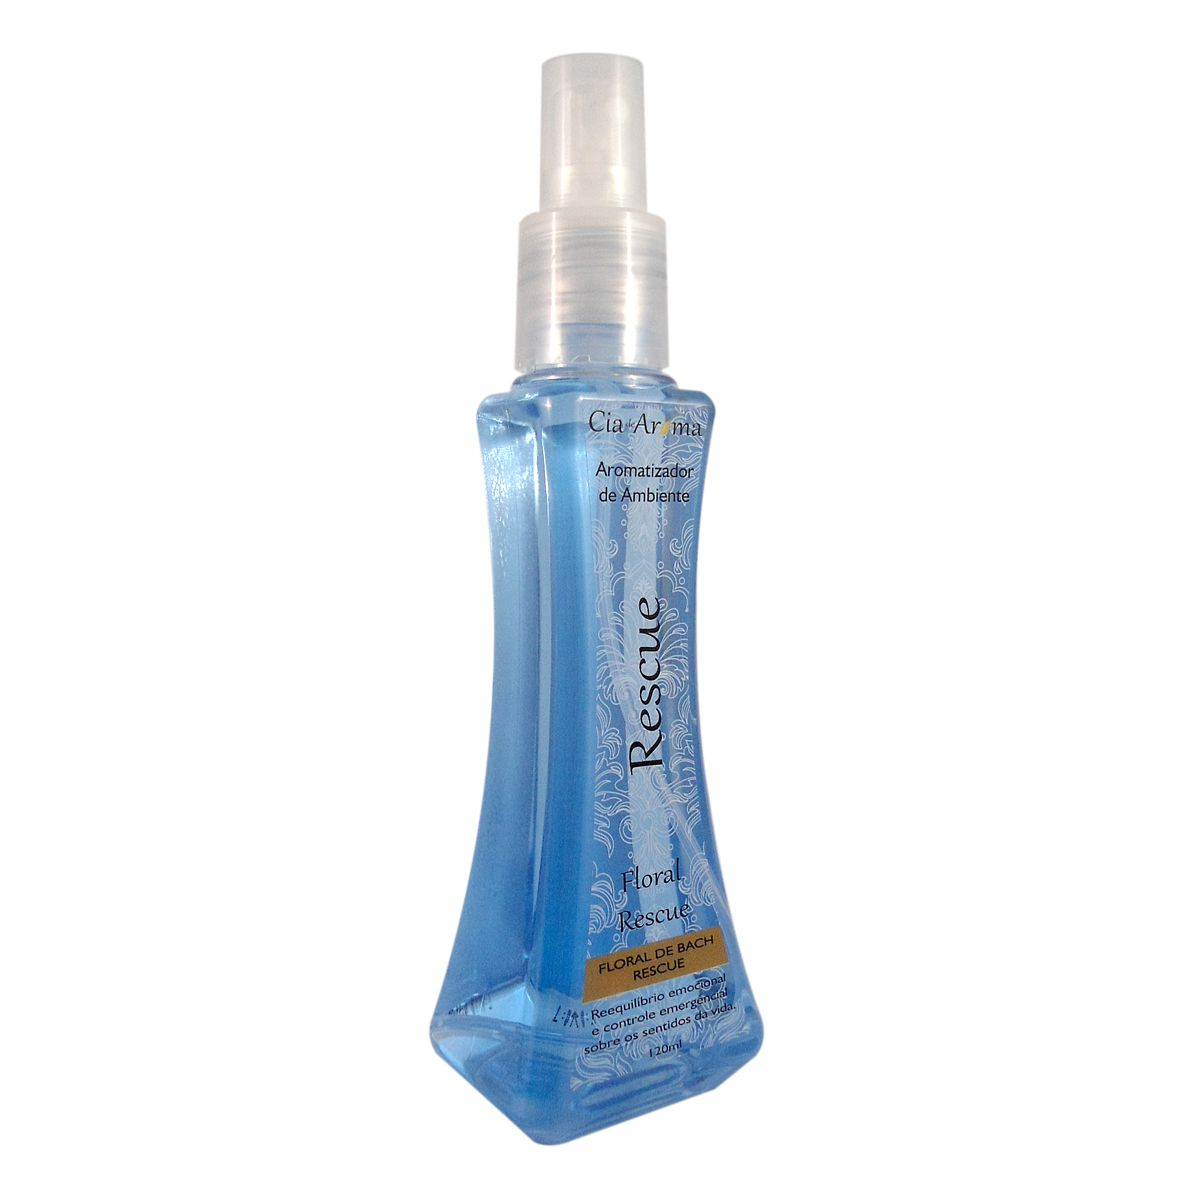 Aromatizador Rescue (Floral) | 120ml